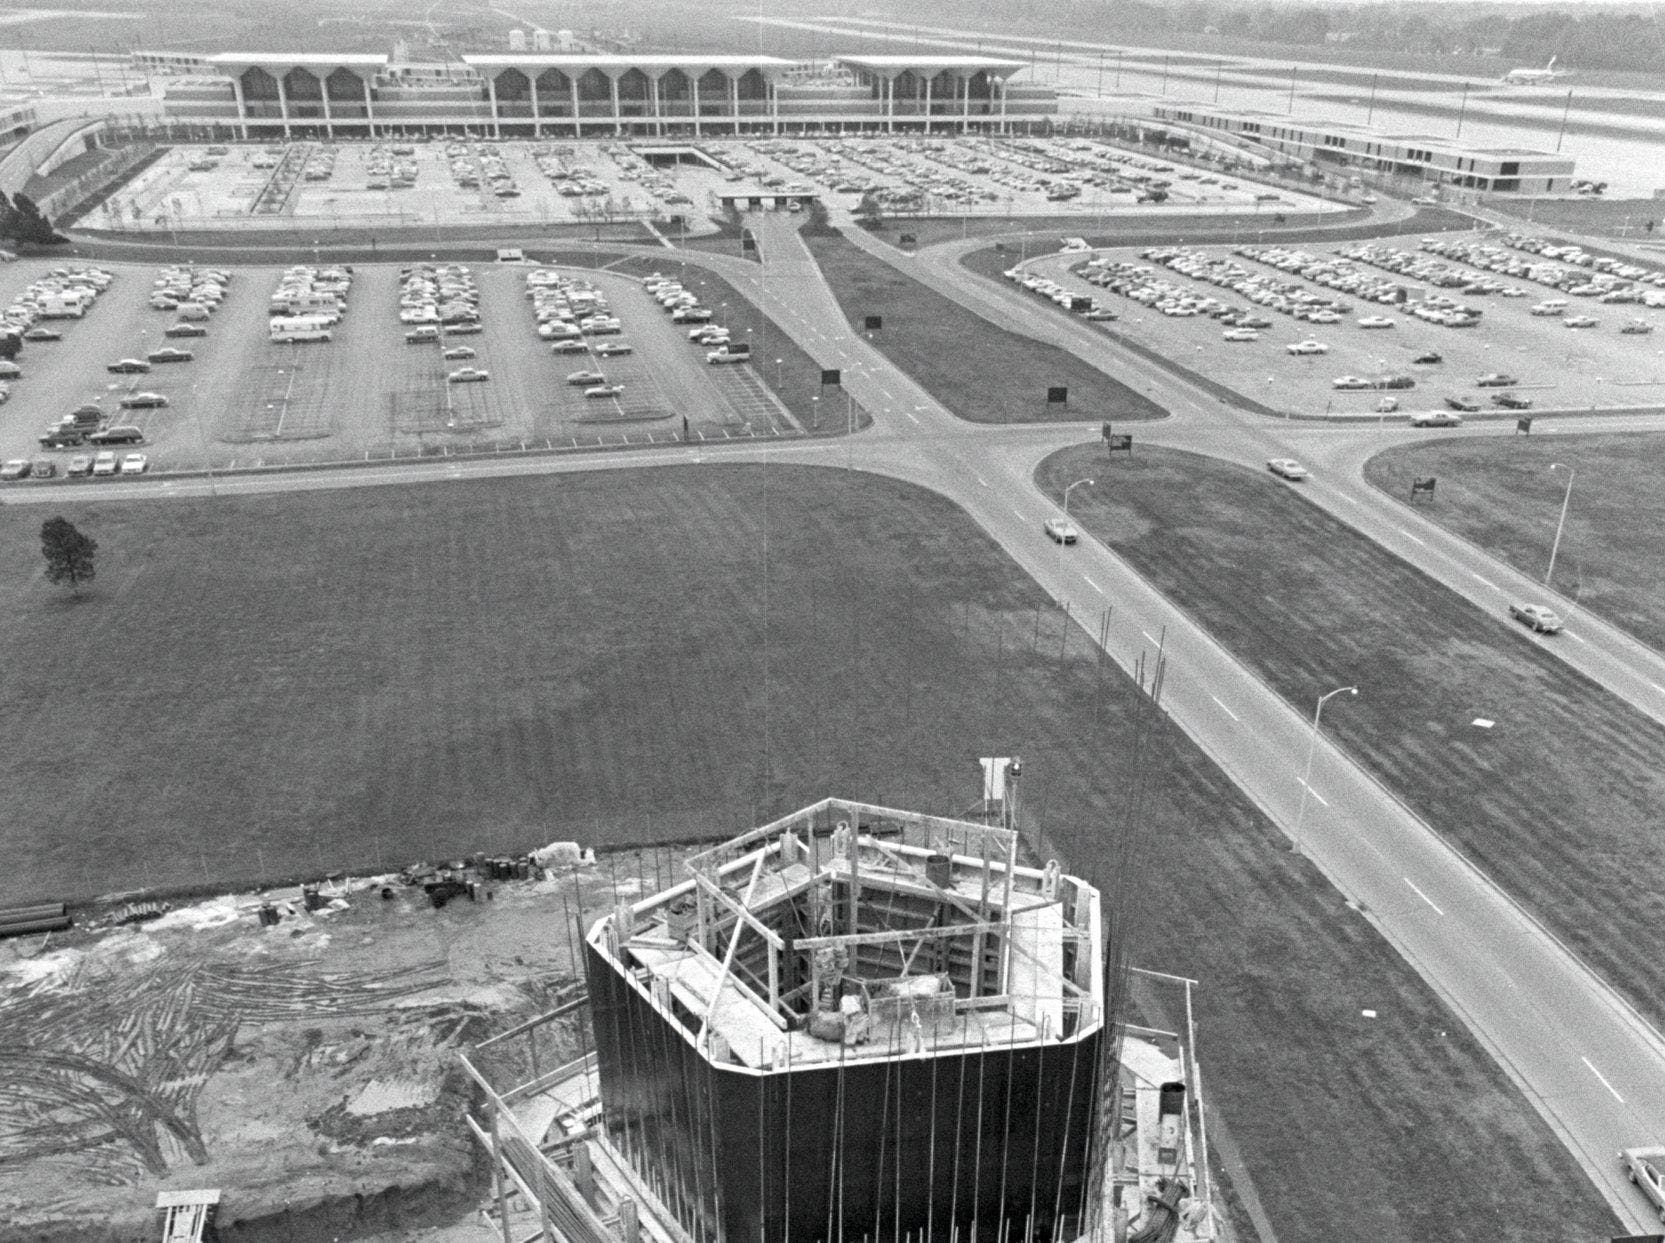 The new air traffic control tower at Memphis International Airport, which will replace an overcrowded tower with some obsolete equipment, stretched 100 of its eventual 185 feet on 7 Nov 1975. It is scheduled to be completed in June and operational a year later with the most sophisticated electronic equipment. Its cost is about $2.5 million, entirely federally financed. The design is the standard one the Federal Aviation Authority is using now on all airports. The picture was taken from a 150-foot crane alongside the rising tower.